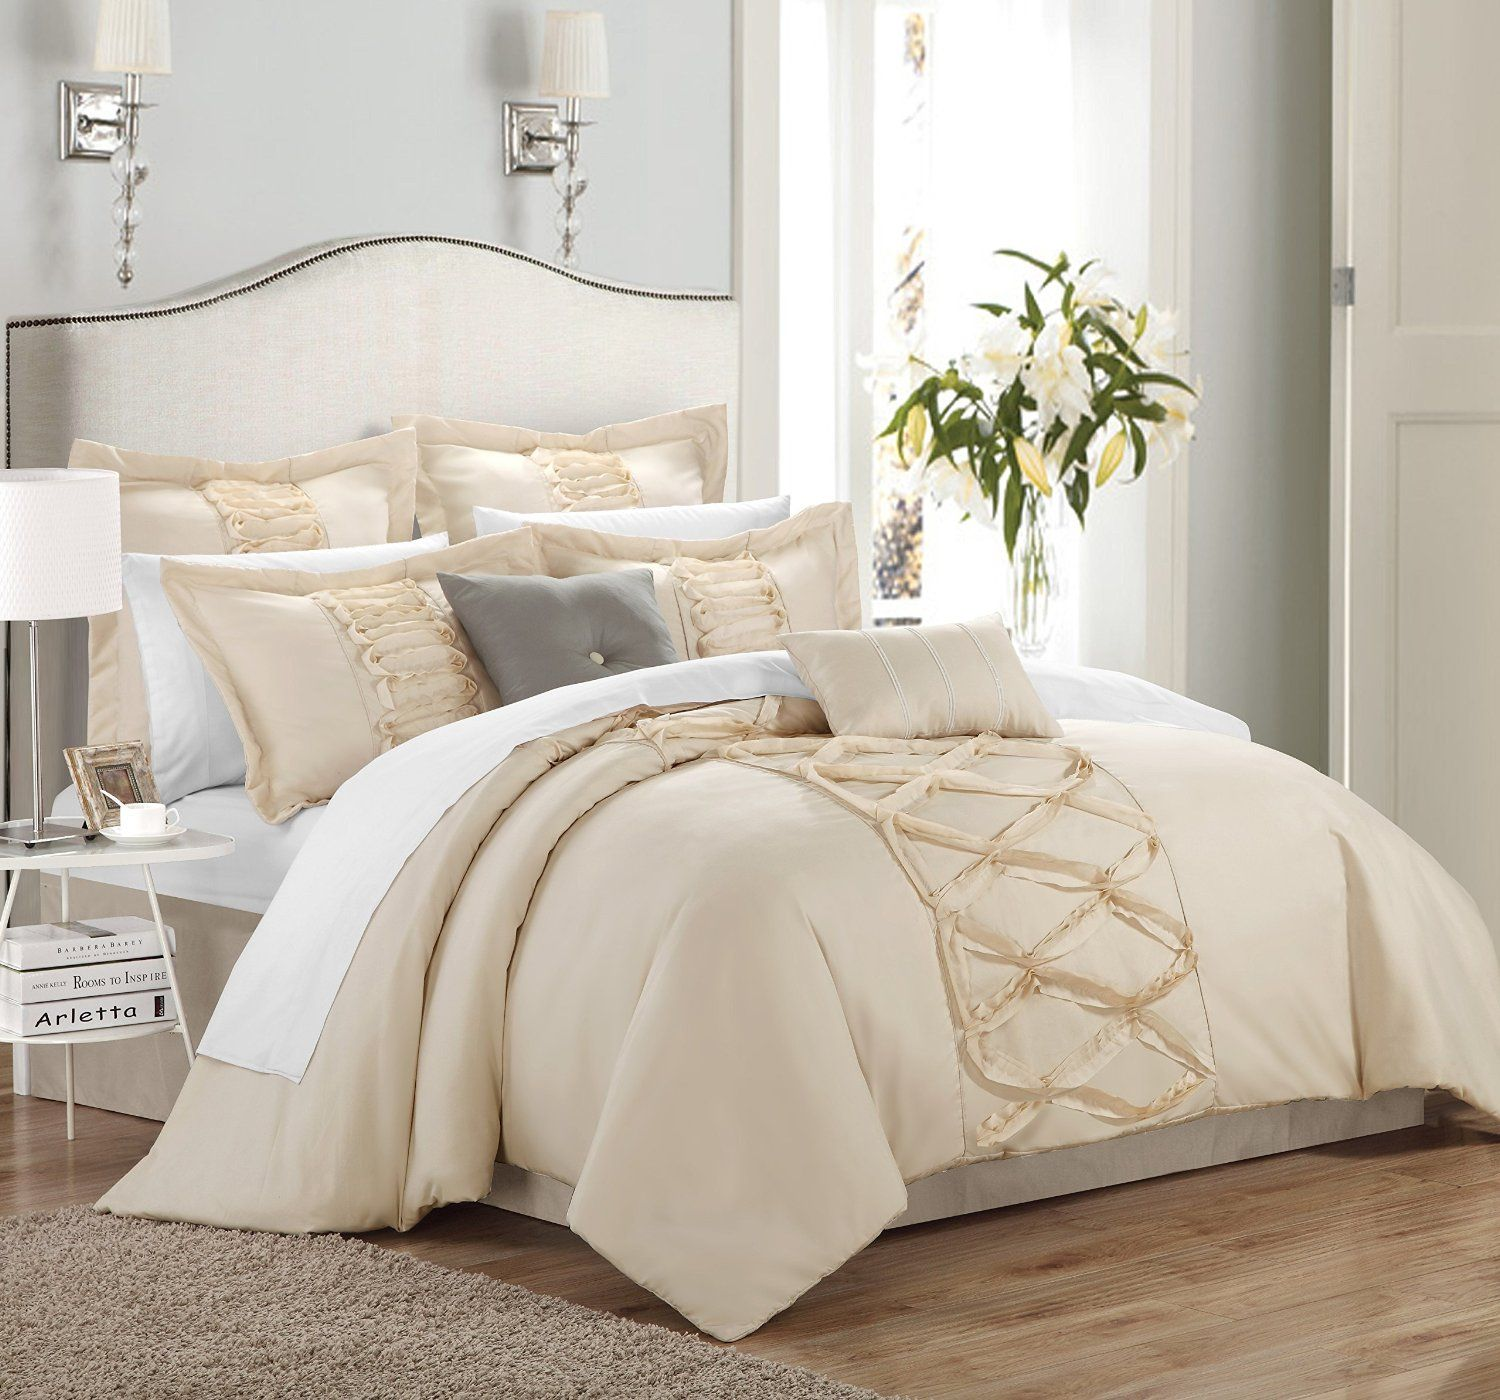 lodge ideas set queen great beige ecrins best comforter